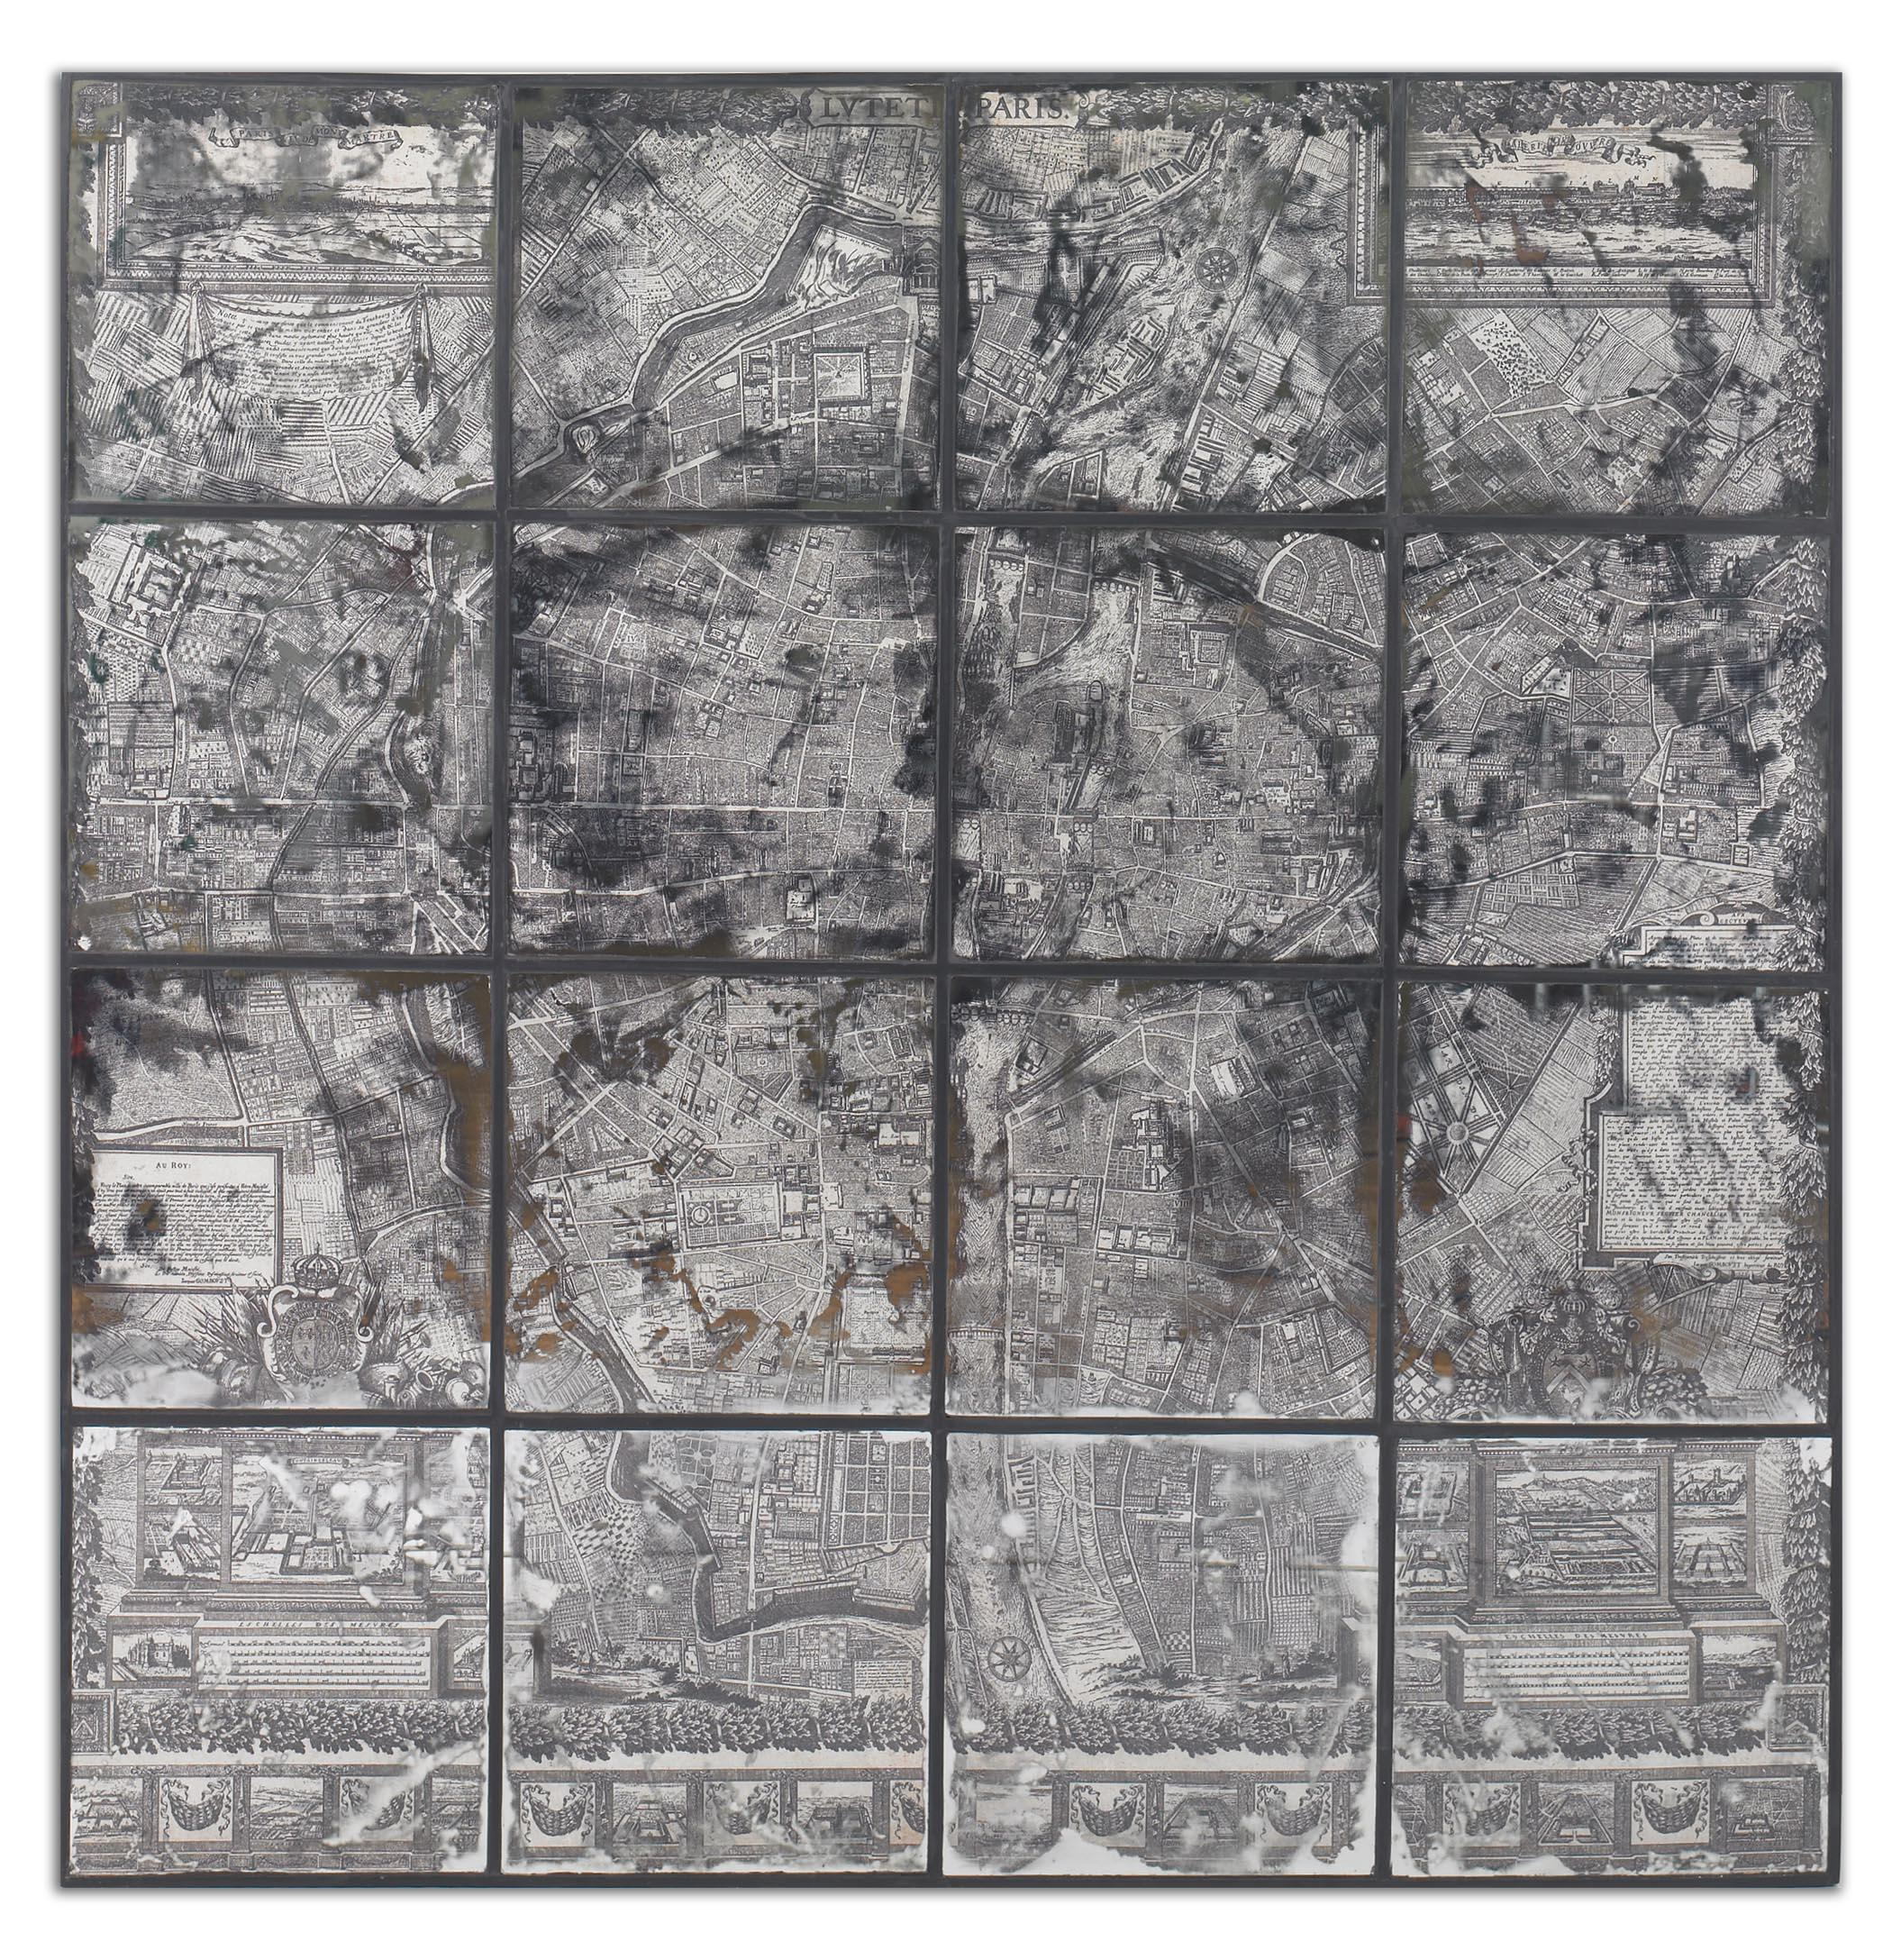 Uttermost Art Antique Street Map Wall Art - Item Number: 55005